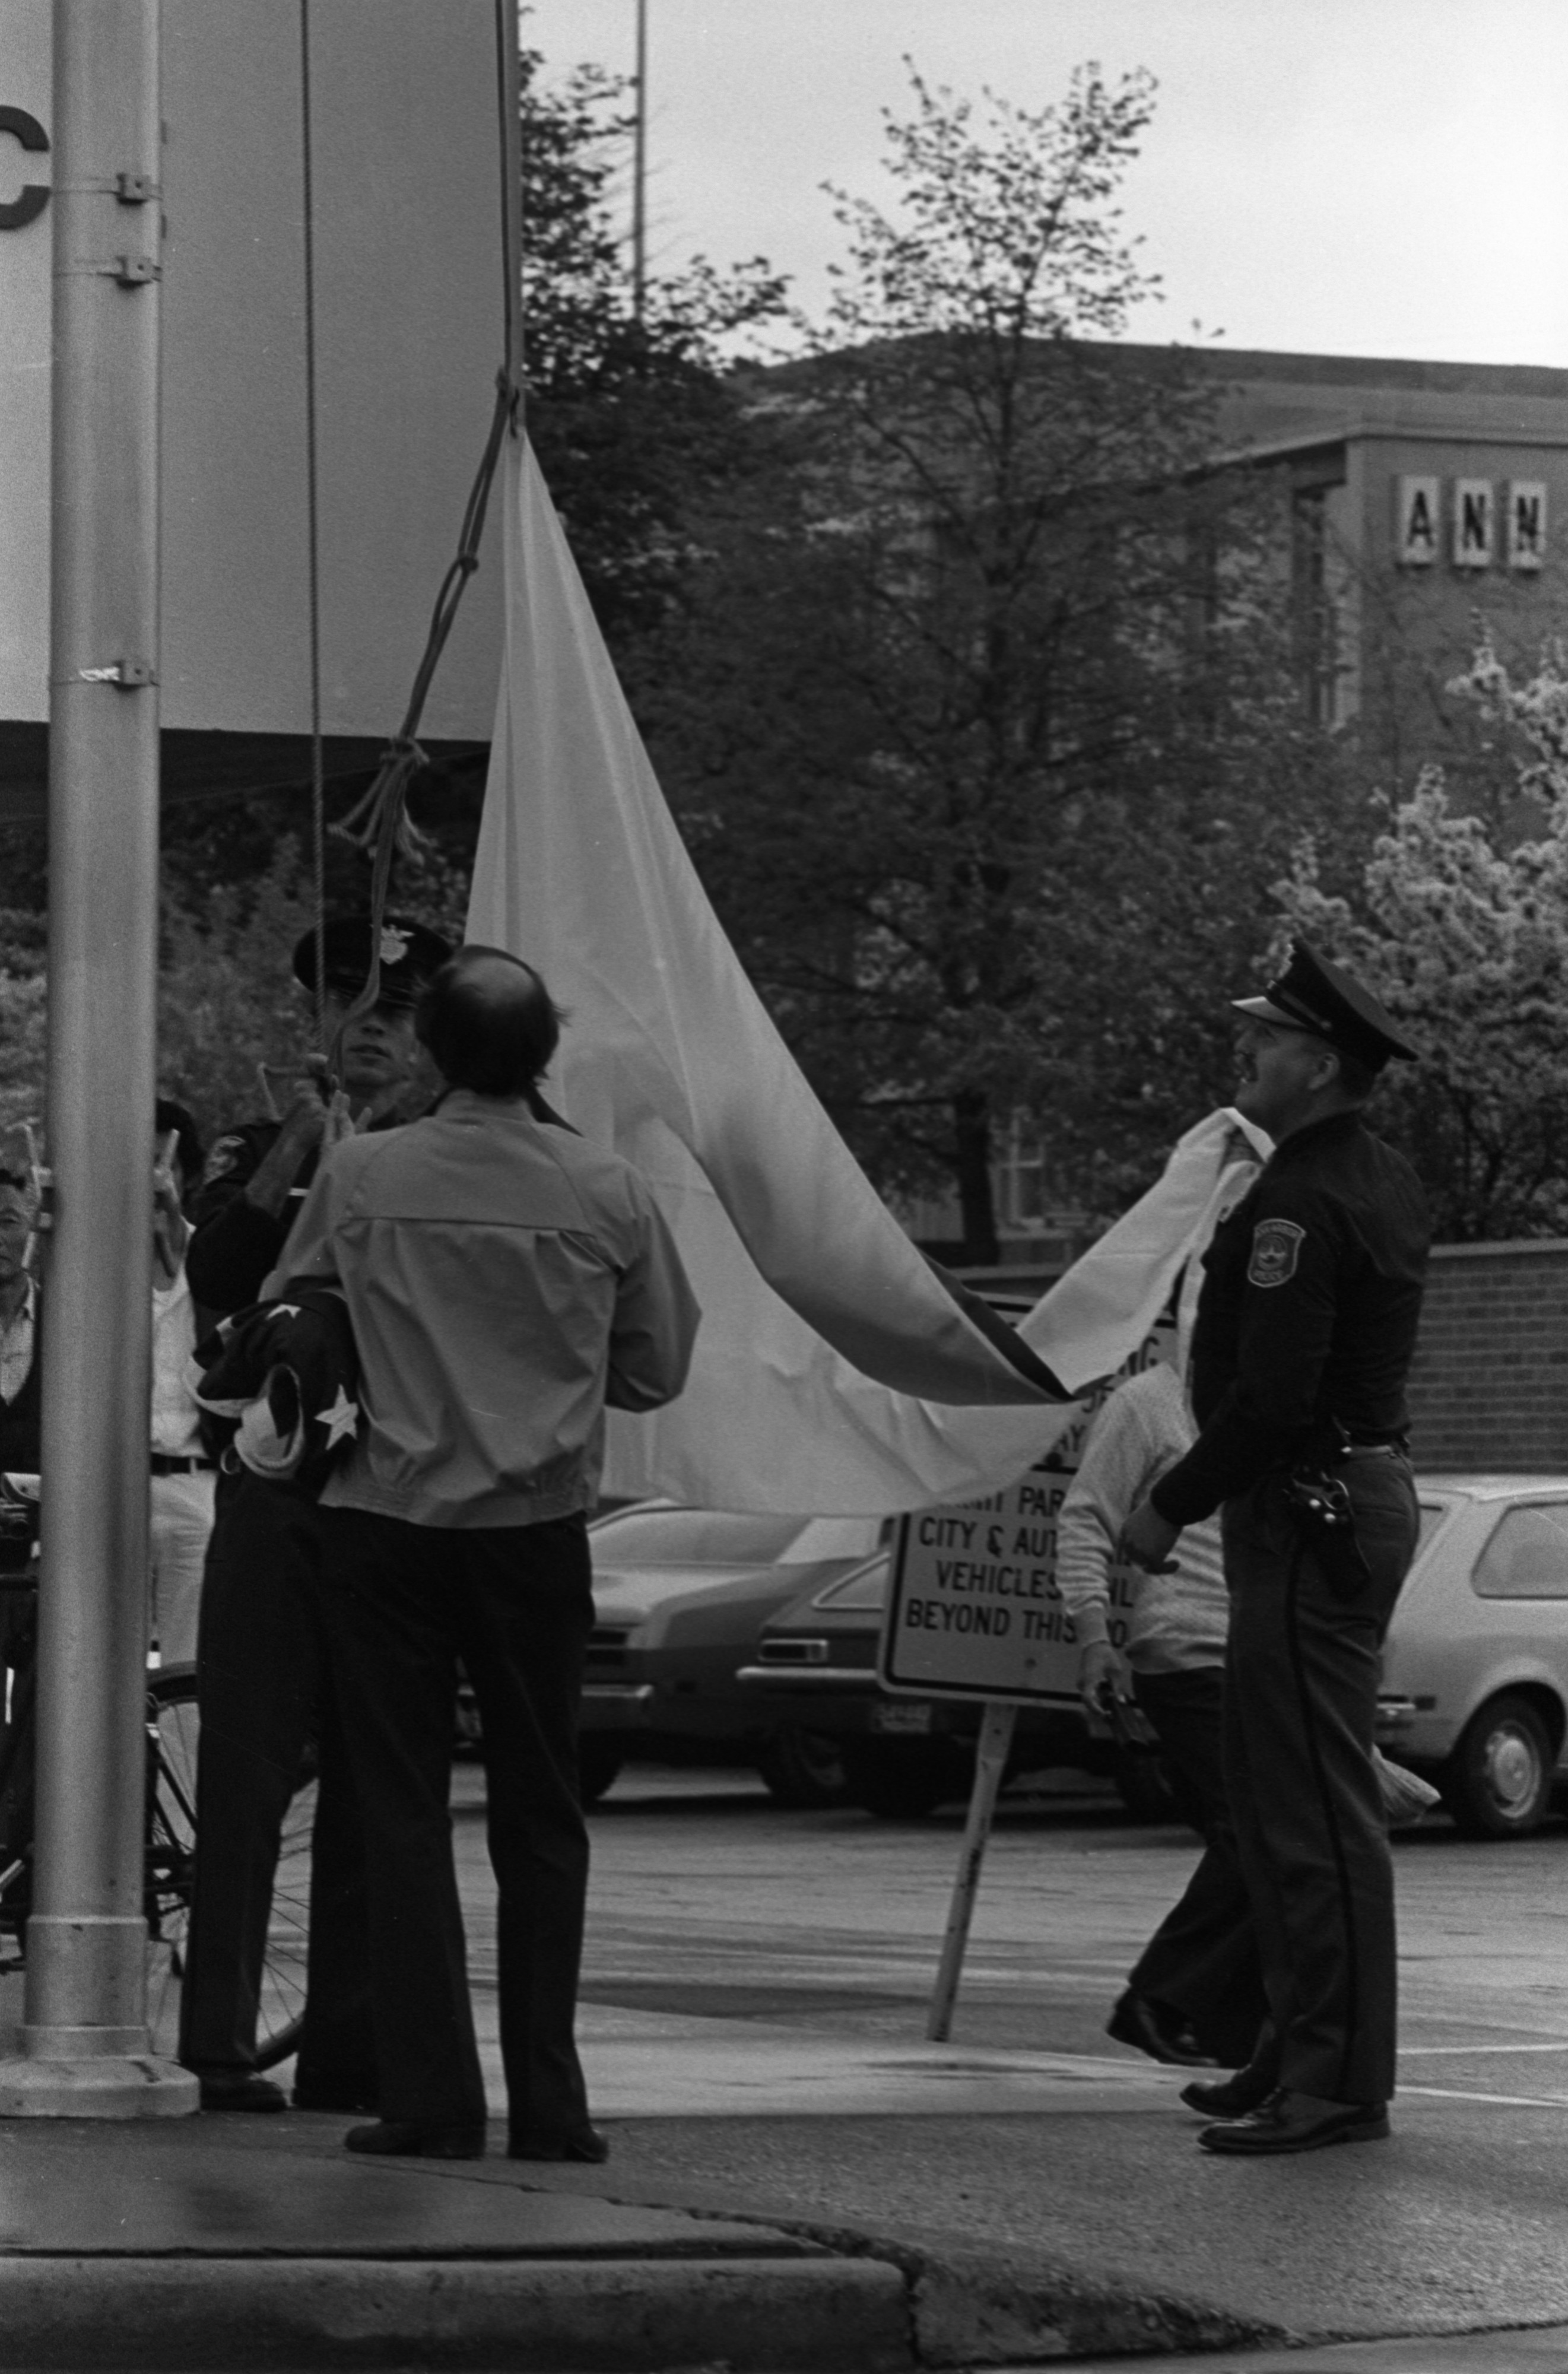 Ann Arbor Police Get Ready To Raise Japanese Flag During Ceremony At City Hall, May 1979 image